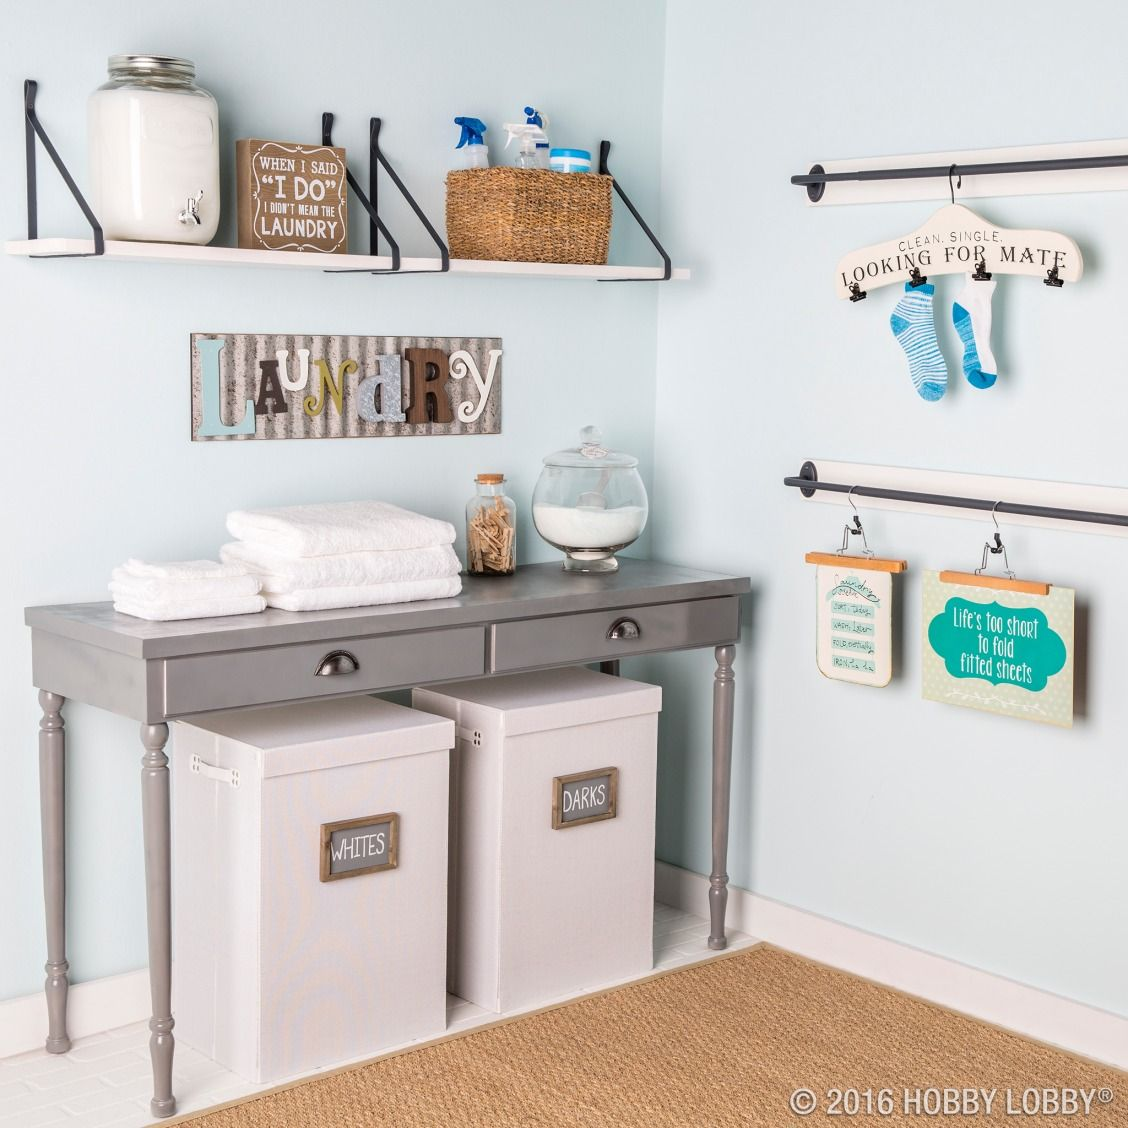 Give Your Laundry Room Some Love With Fun And Functional Decor